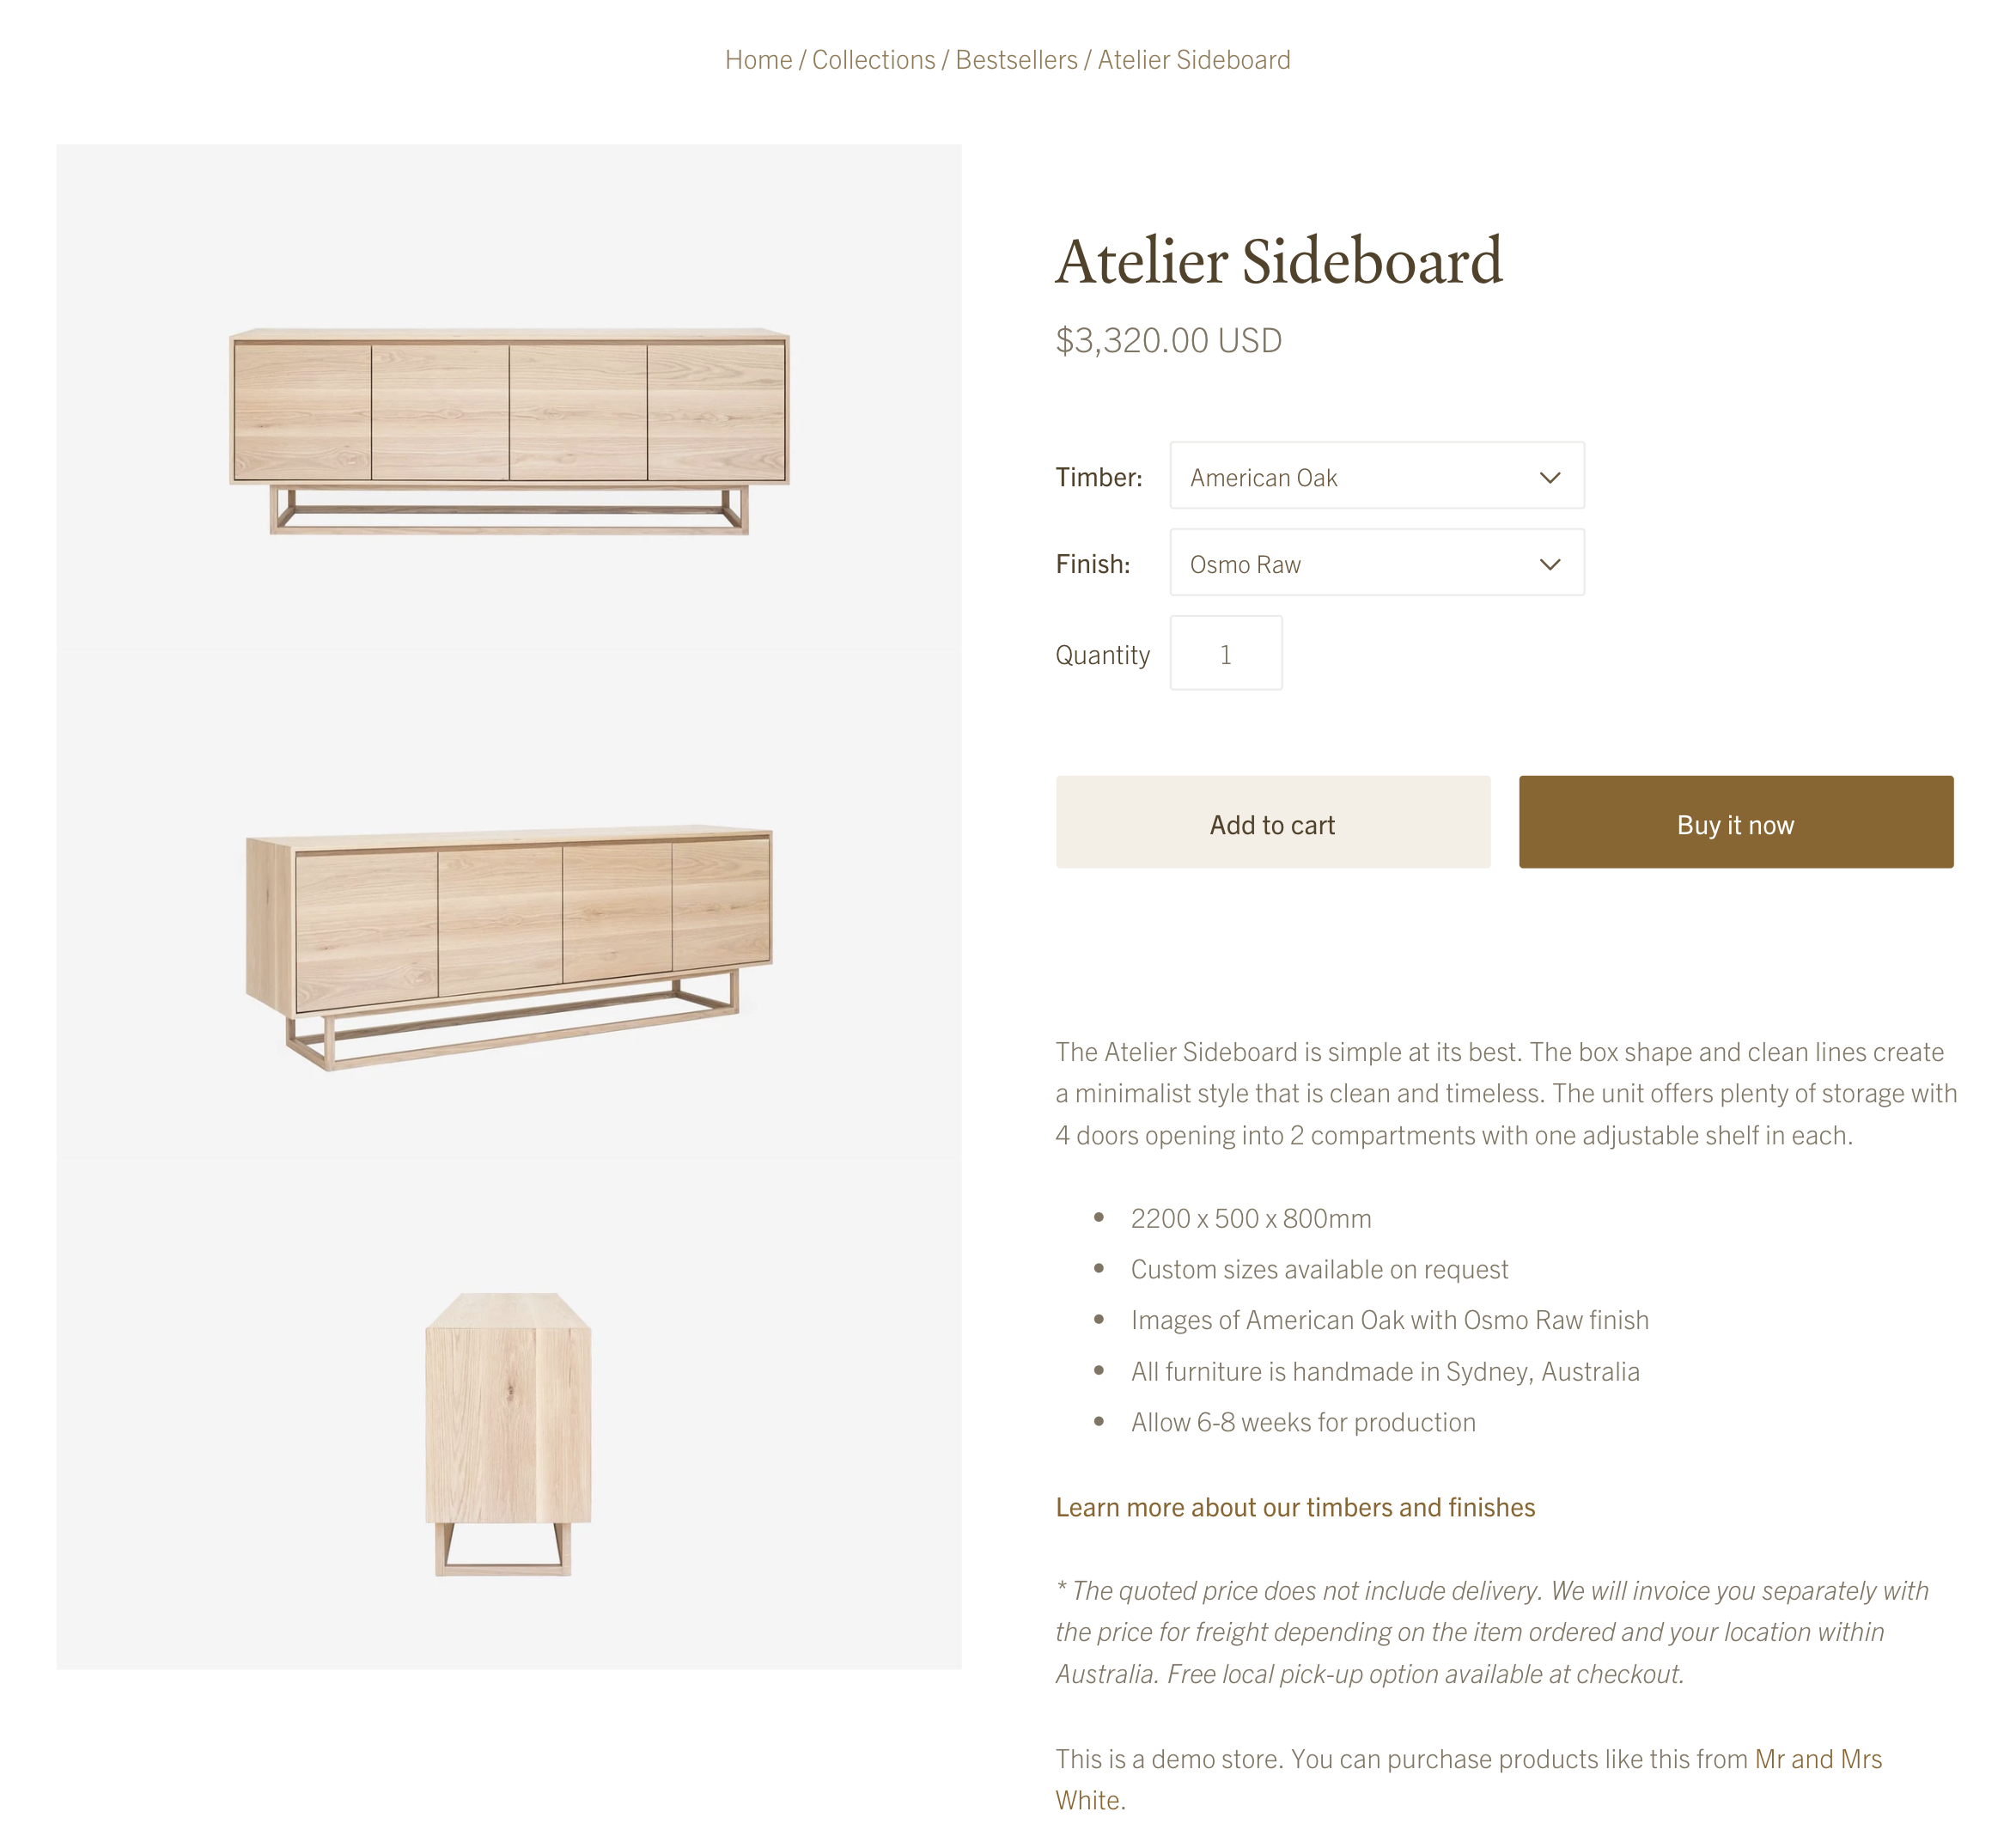 List_style_image_layout_for_product_page.png